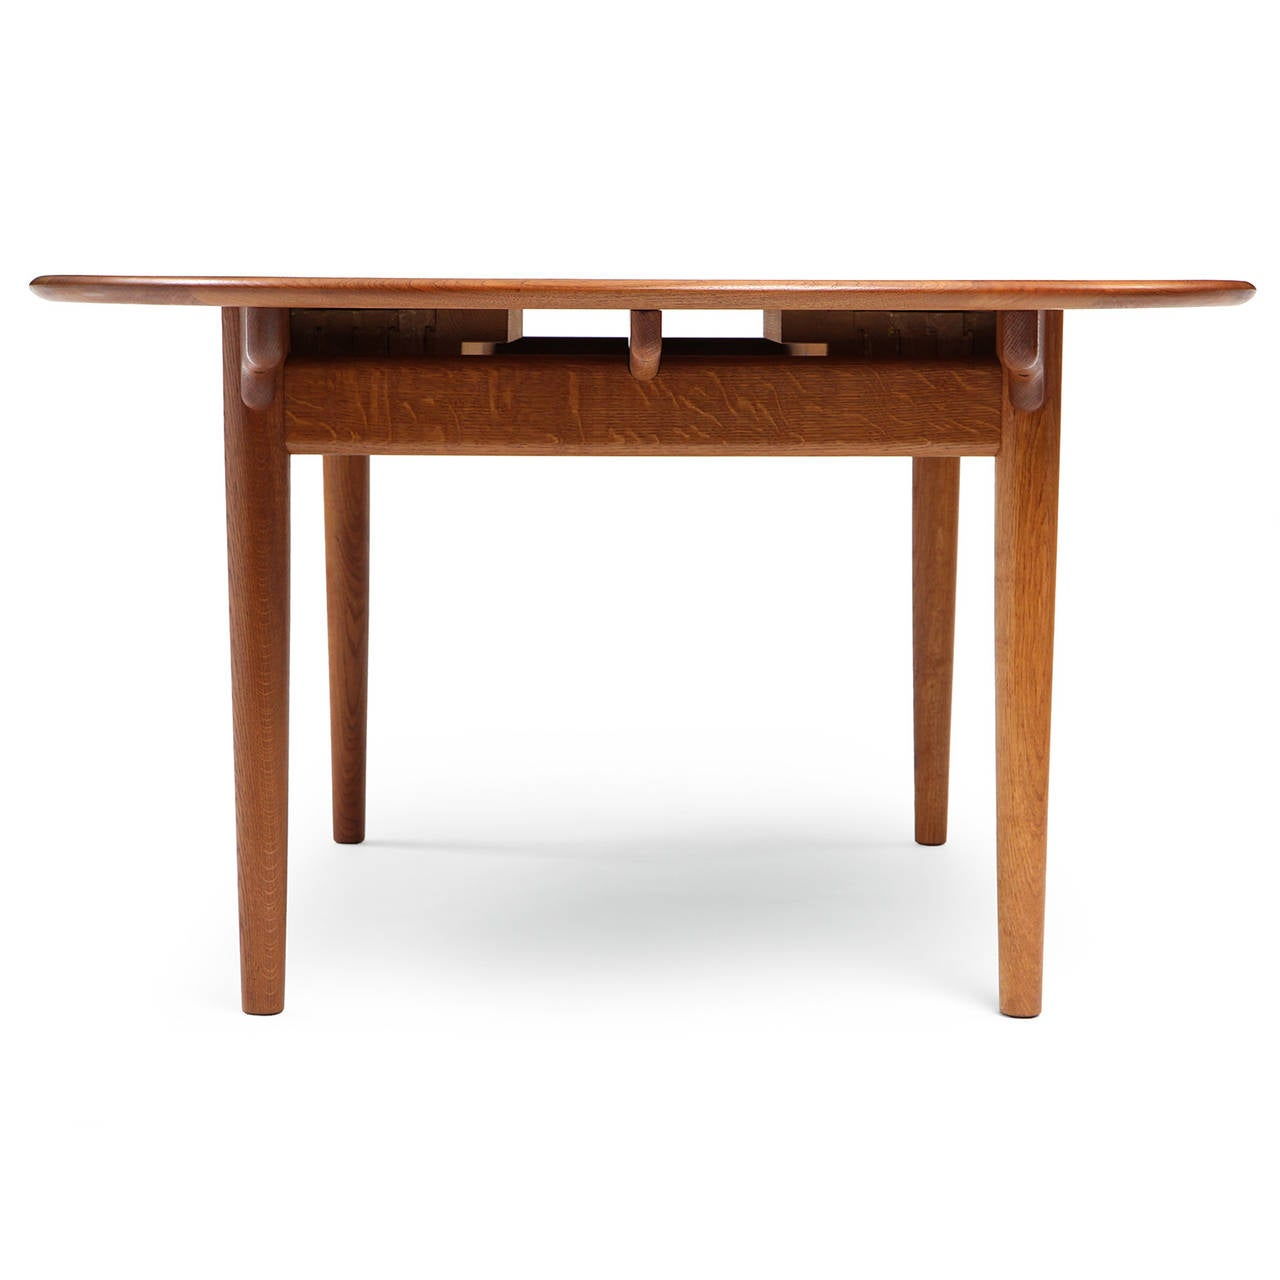 Mid-20th Century Oval Table by Hans J. Wegner For Sale